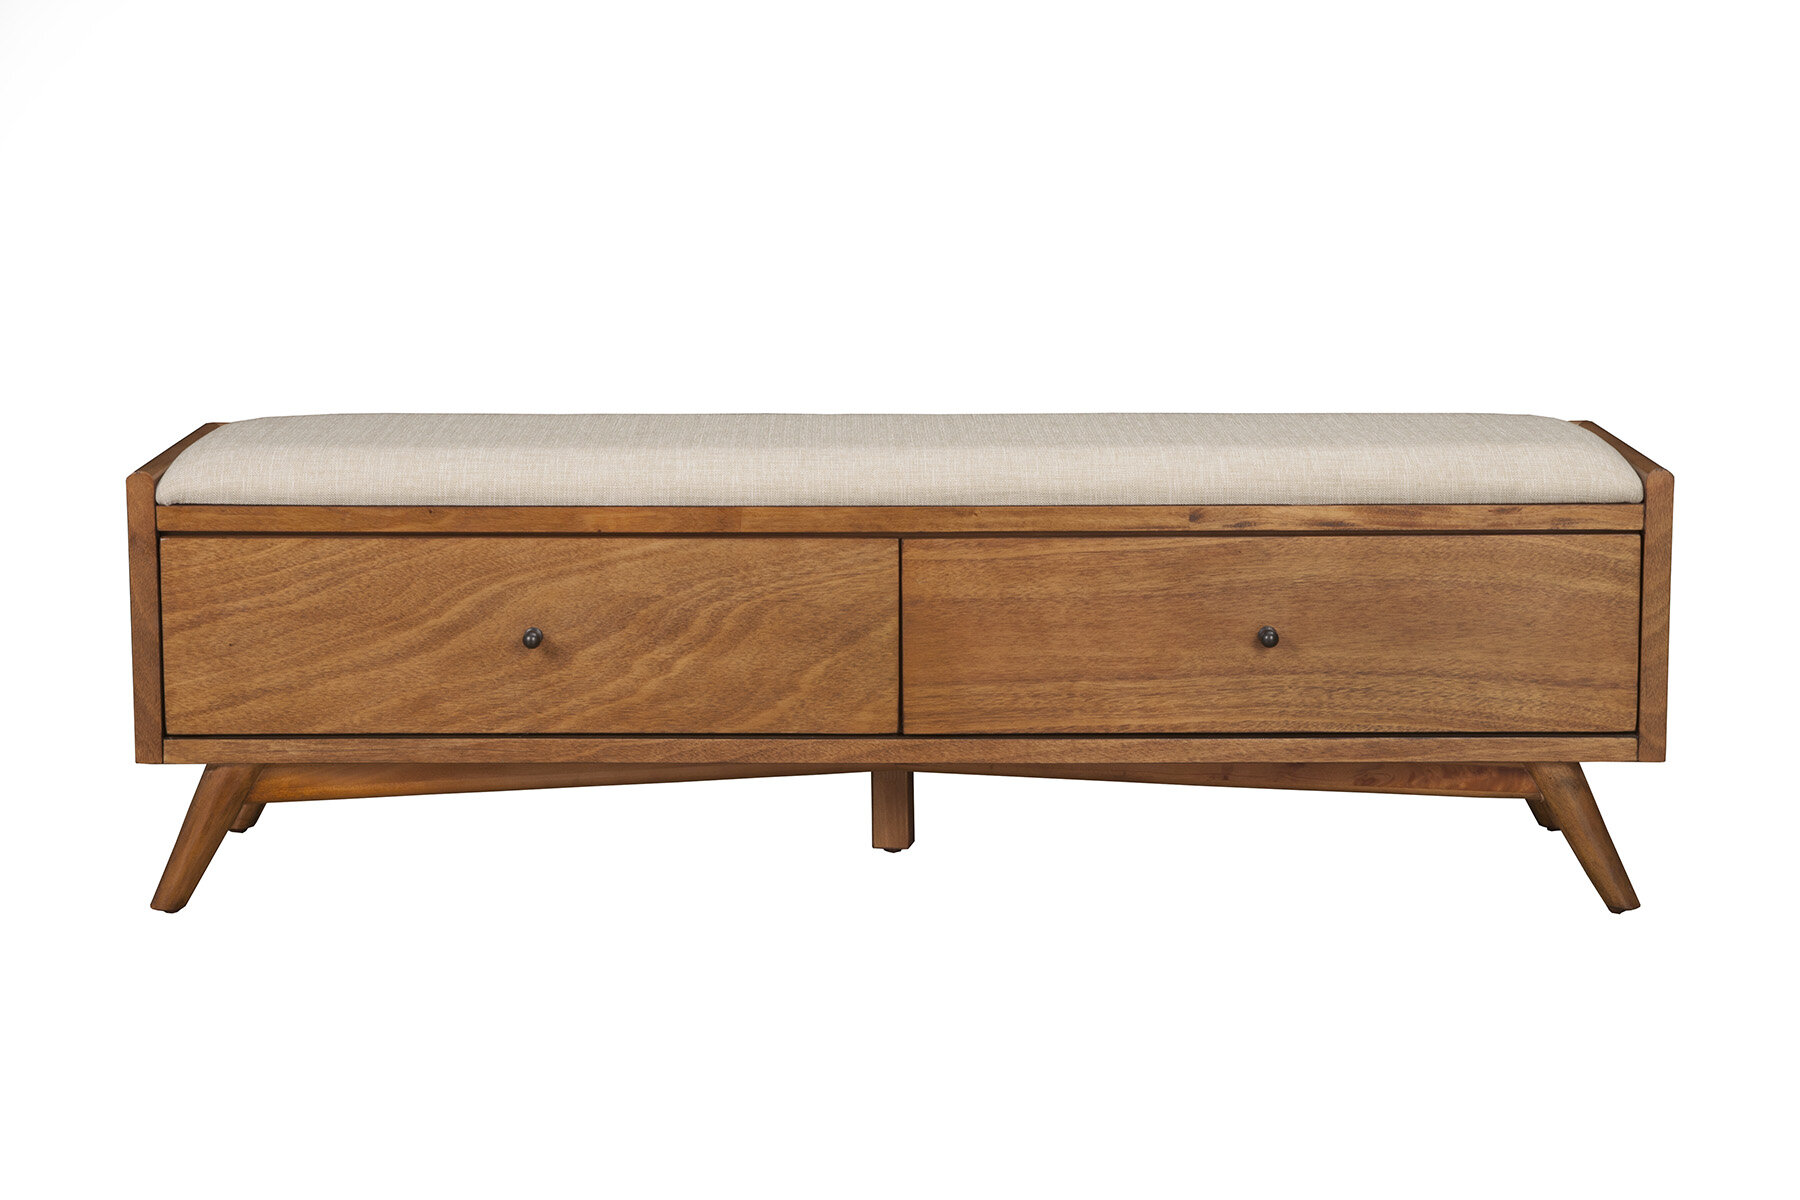 Modern Contemporary Storage Benches You Ll Love In 2021 Wayfair